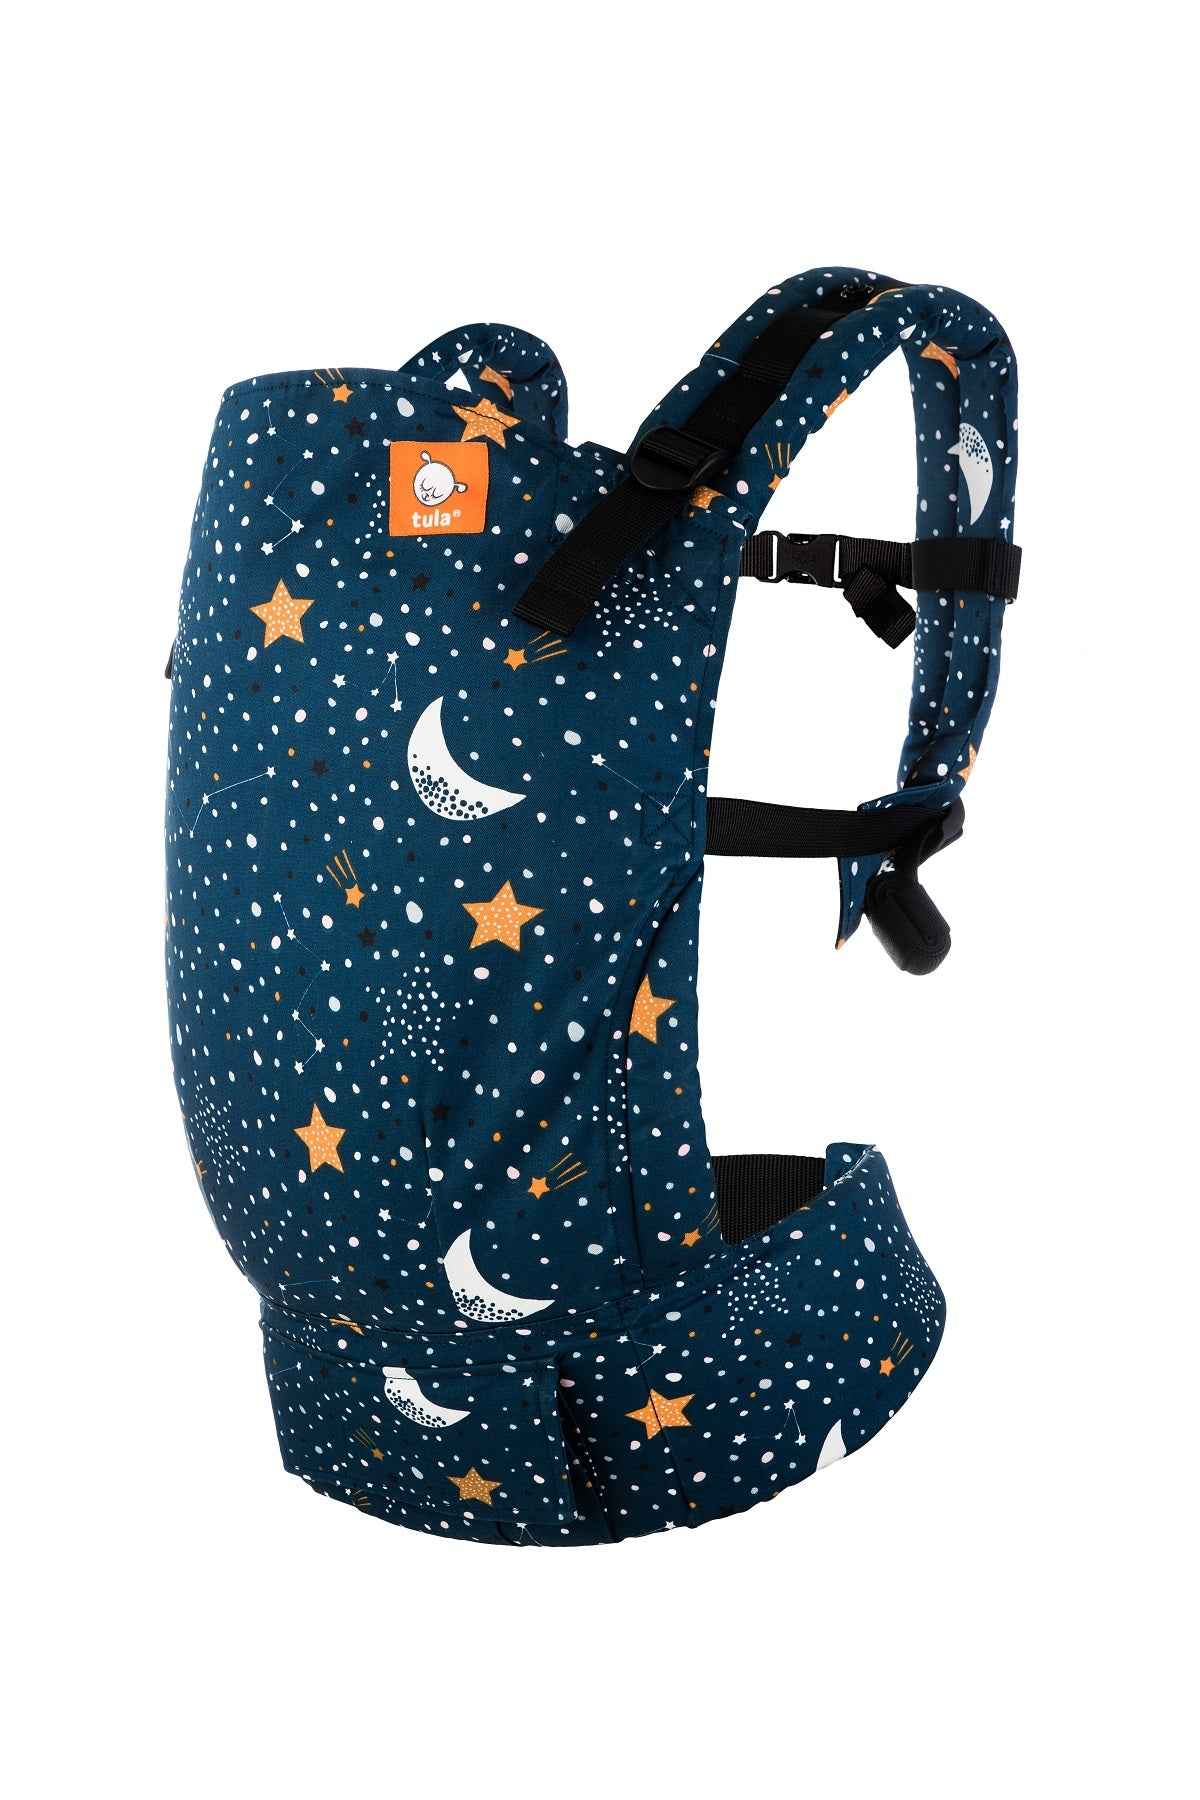 Slumber Preschool Toddler Baby Carrier Baby Tula Us Poshmark makes shopping fun, affordable & easy! slumber preschool toddler baby carrier baby tula us